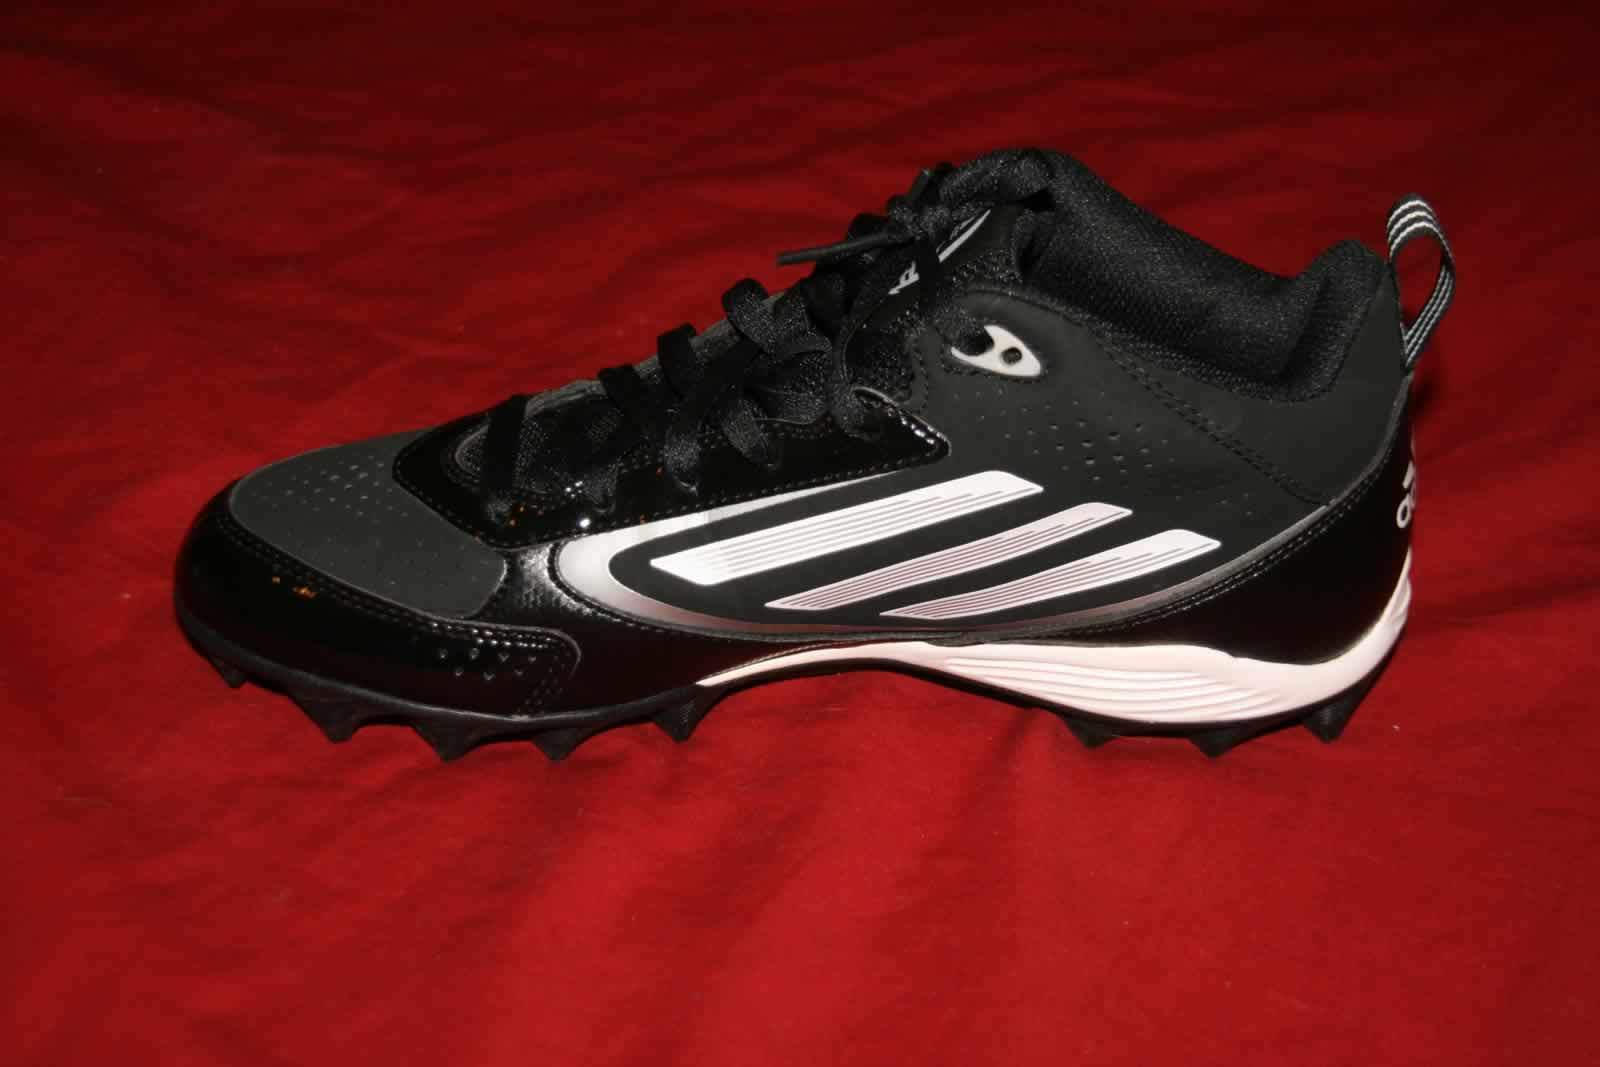 Adidas Lightning Football Cleats Sz 10 Black and White Seasonal price cuts, discount benefits